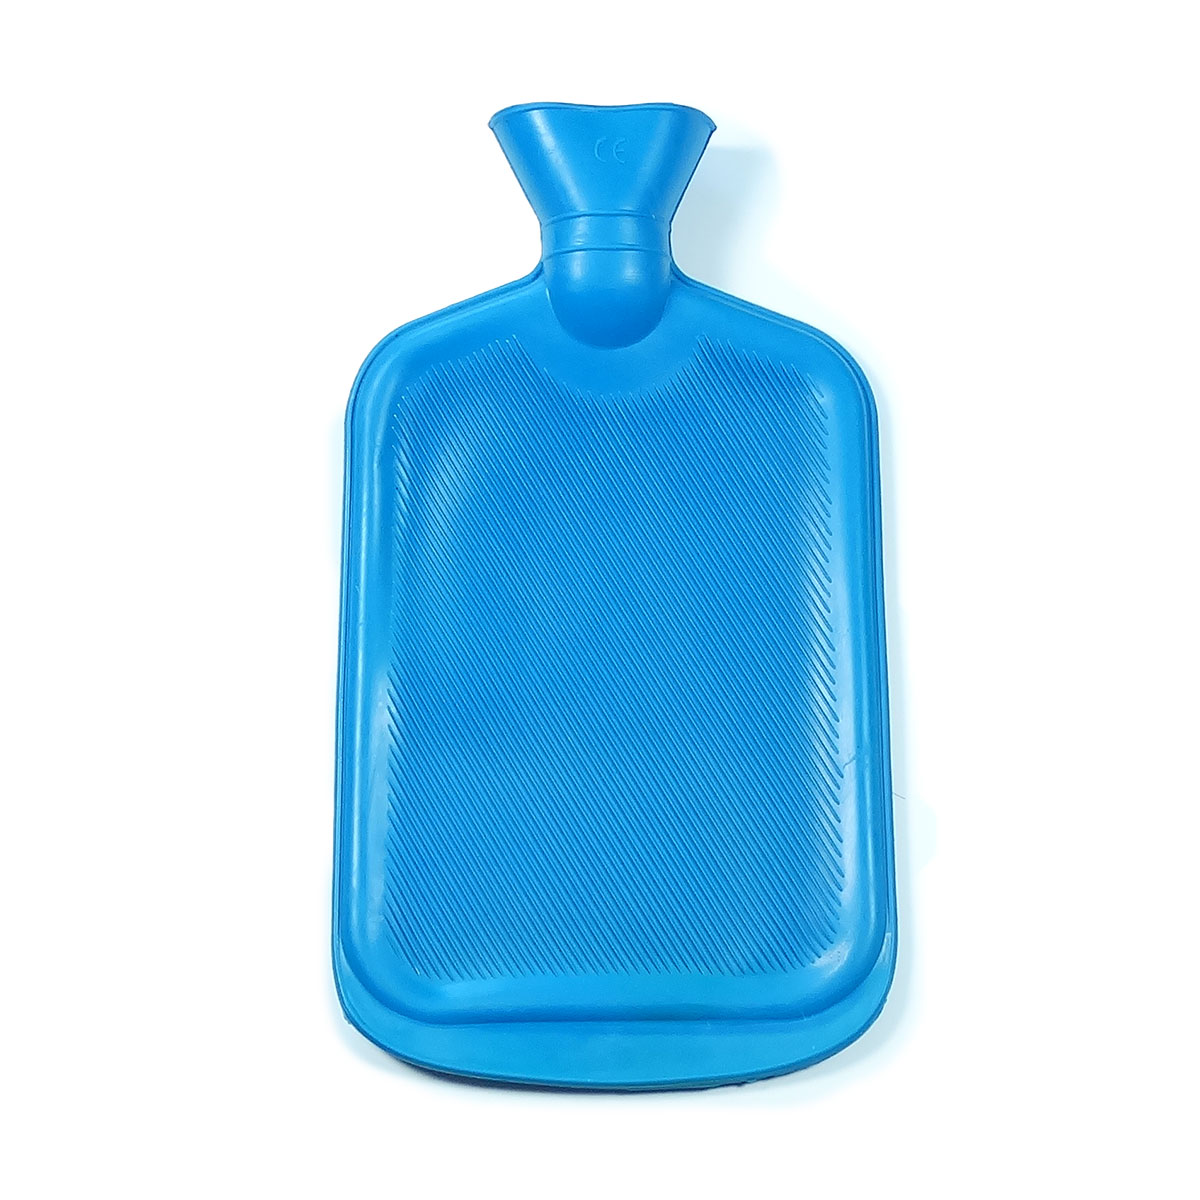 Hot water bag blue - Sayoni Care